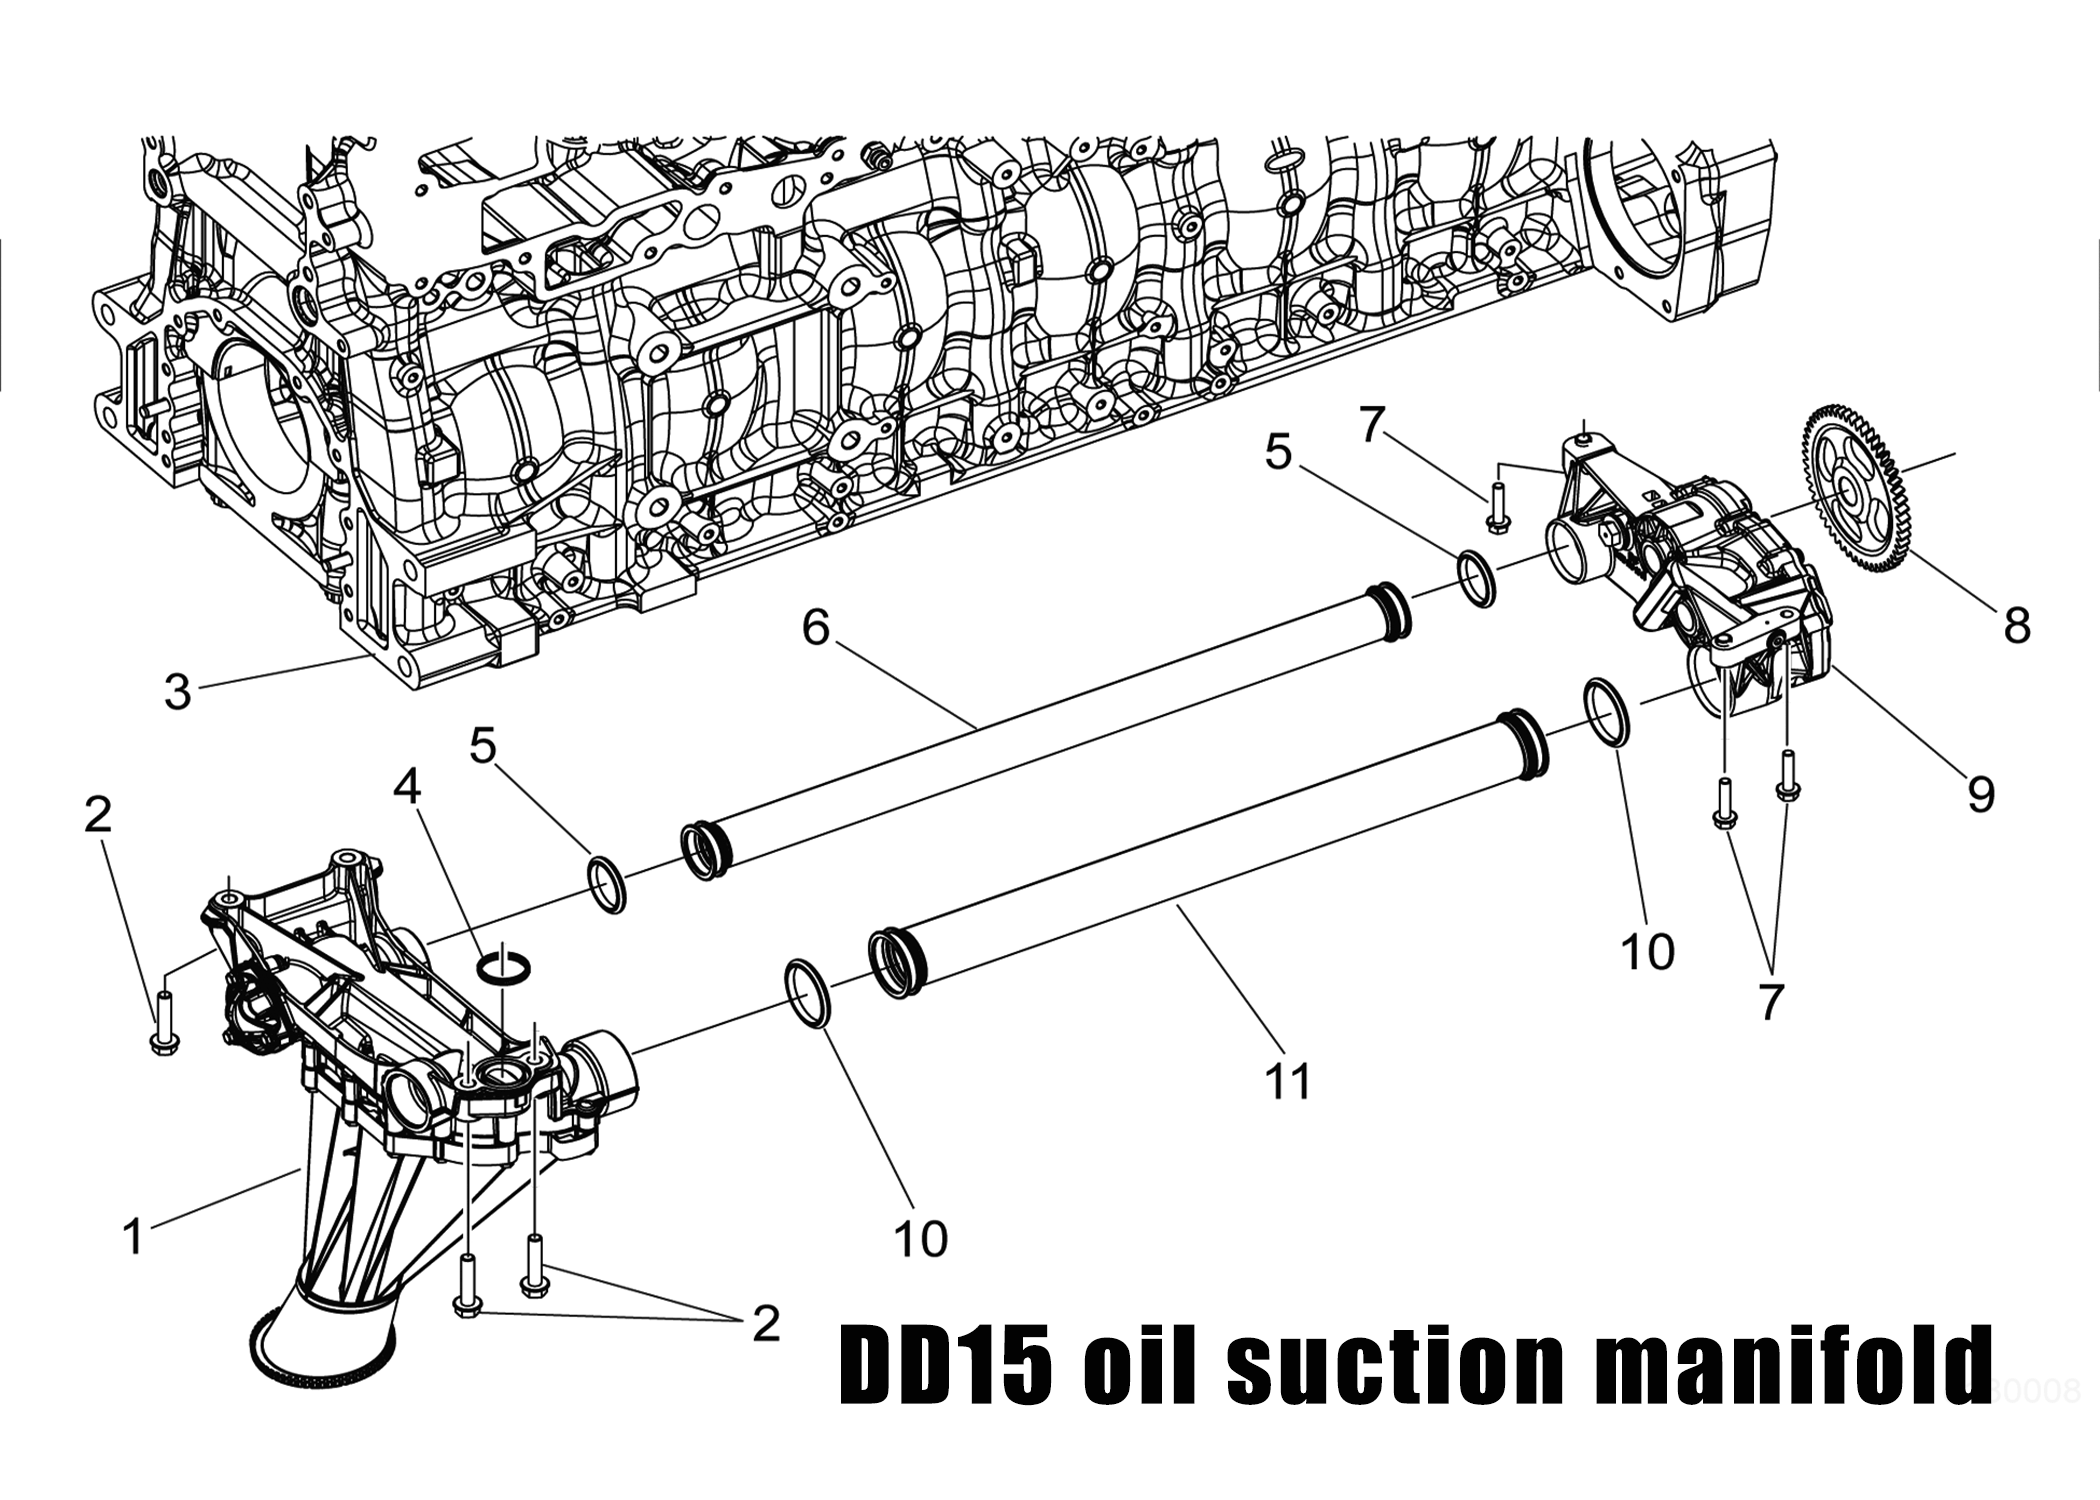 Most Common Issues With the DD15's Hutchins TX